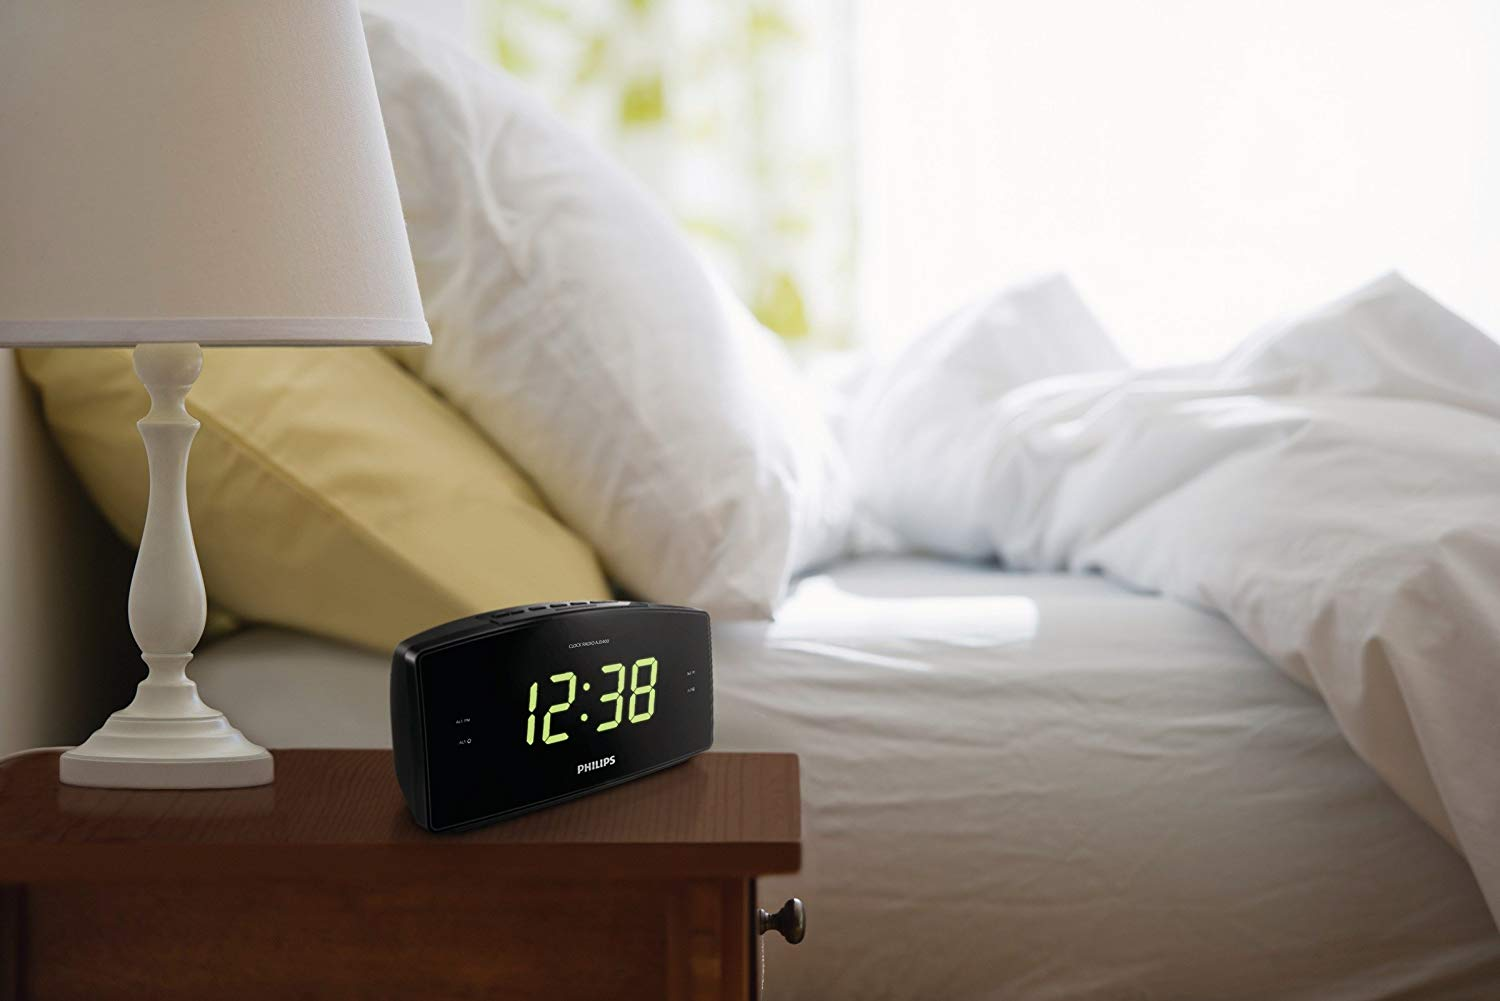 Philips AJ3400 Wake-Up Alarm Clock with Radio for Bedside or Kitchen for £21.99